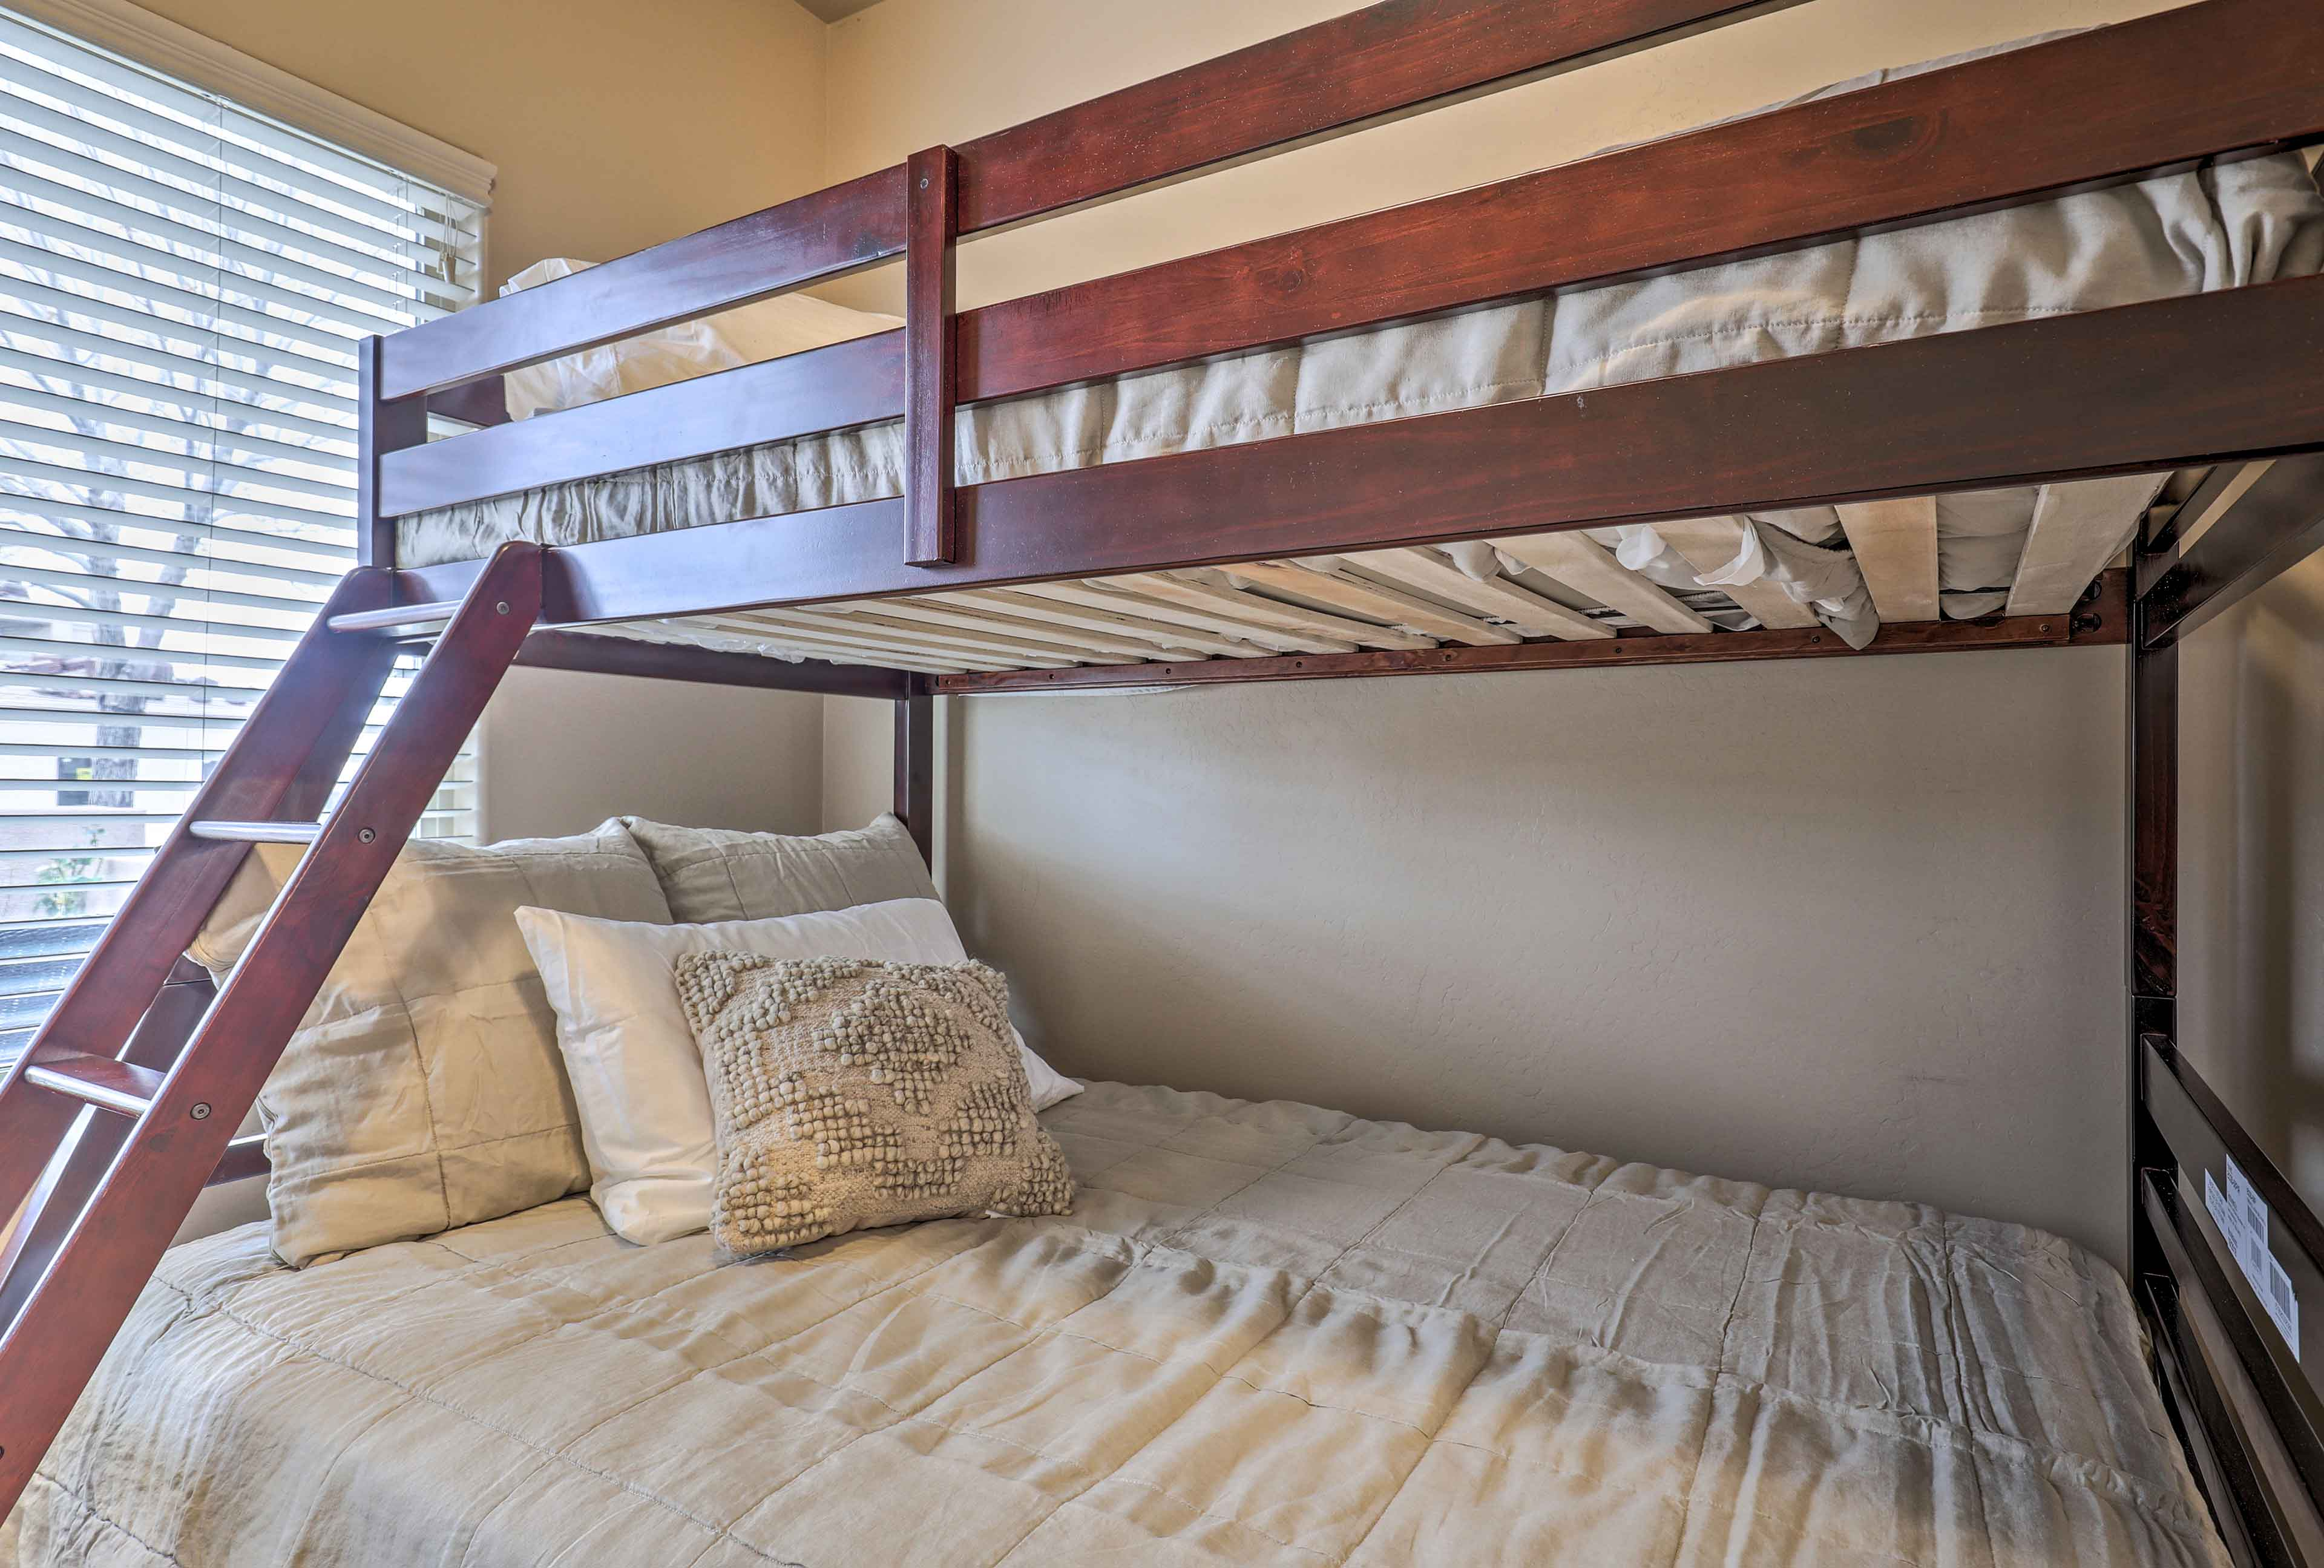 This first guest bedroom includes a twin-over-full bunk bed.